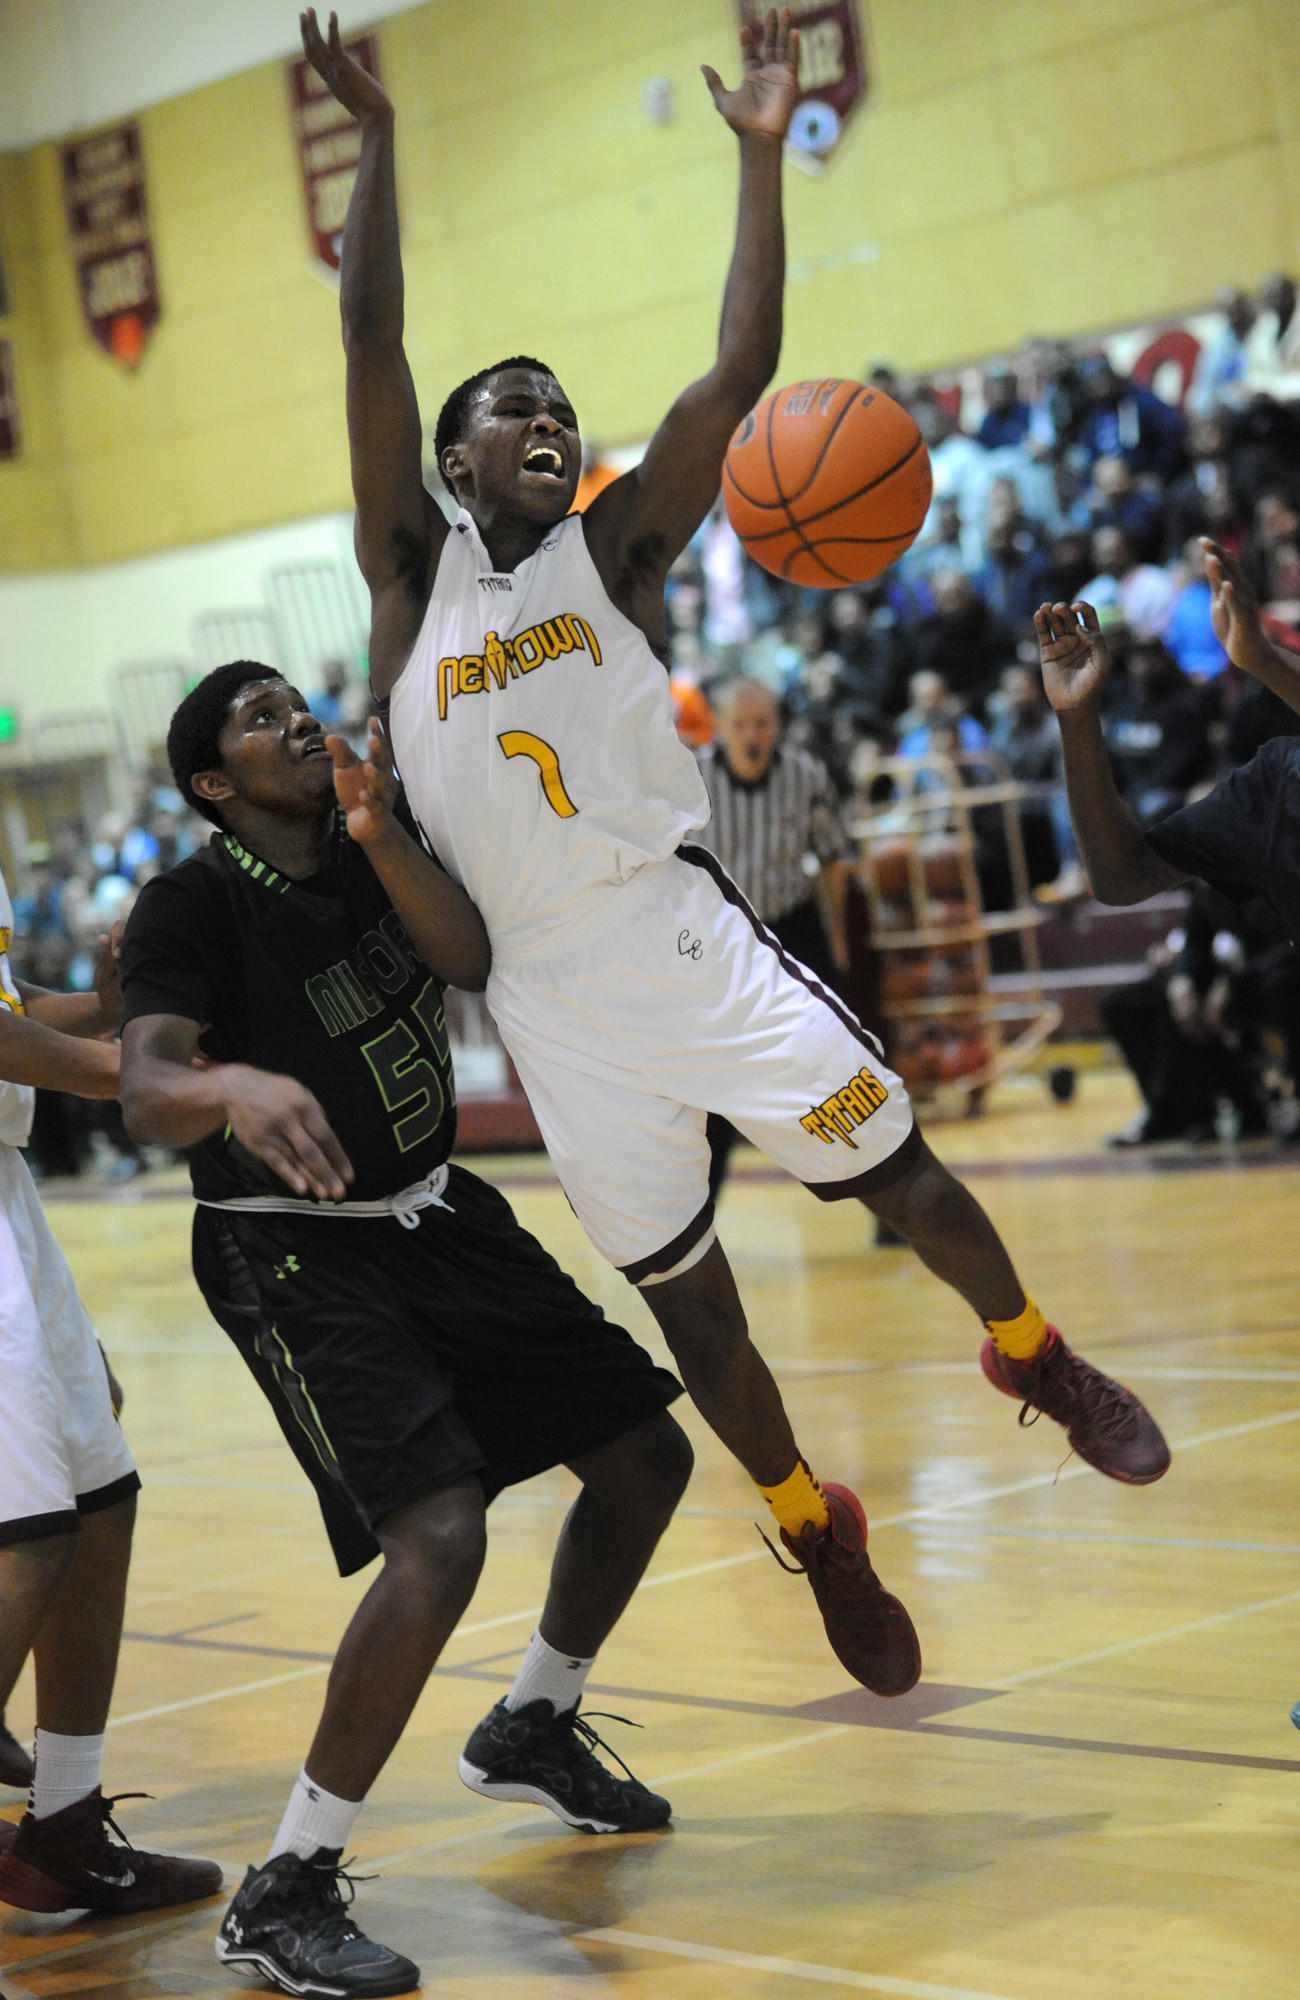 New Town's Danny Shand goes up for the ball against Milford Mill's Allen Costley in the fourth quarter.